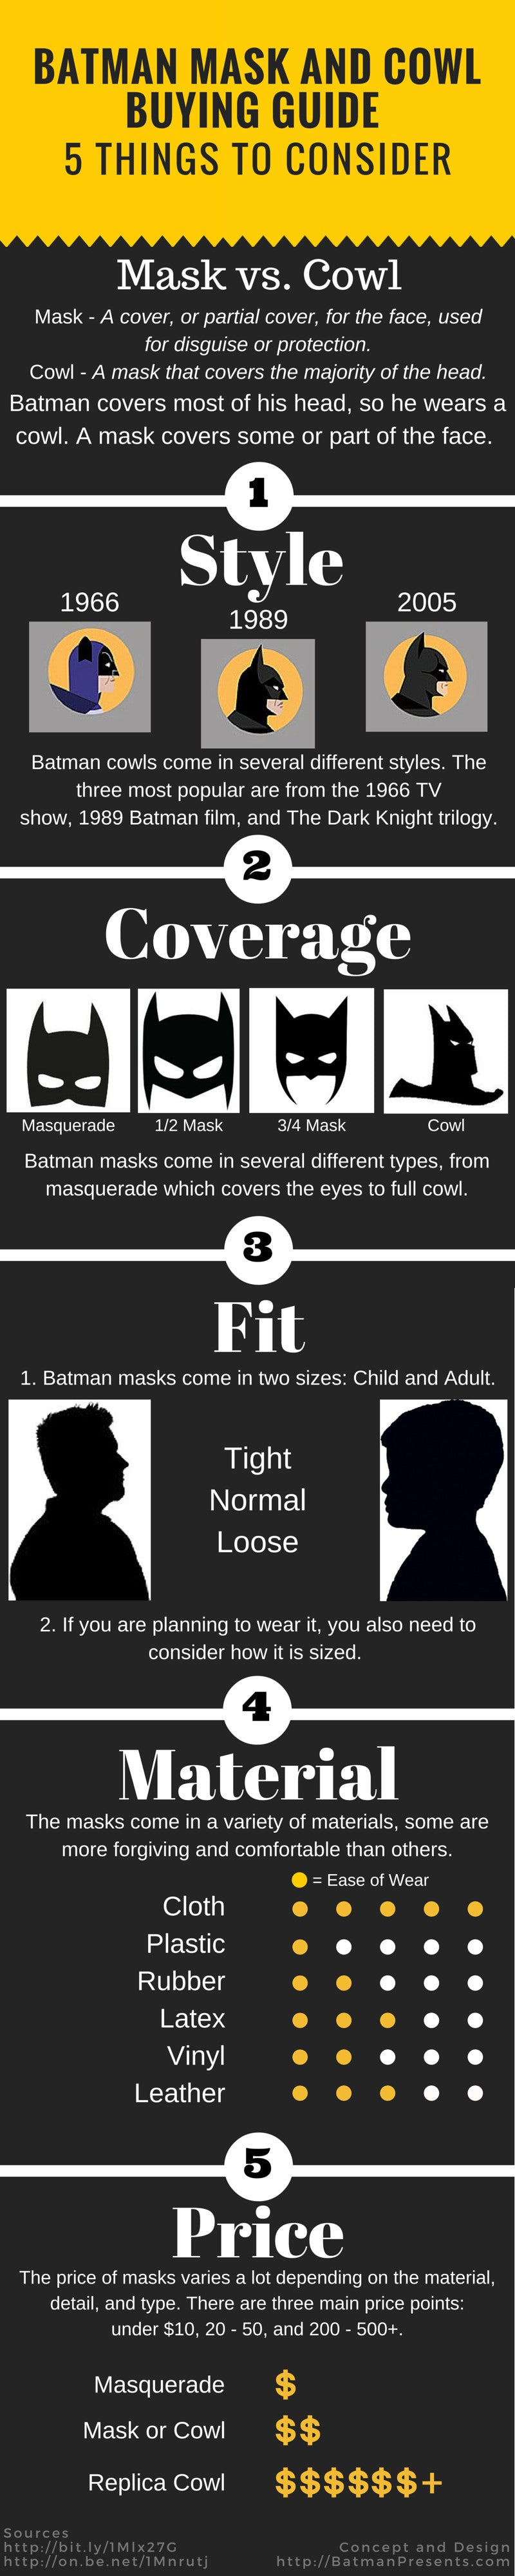 Batman cowl and mask infographic